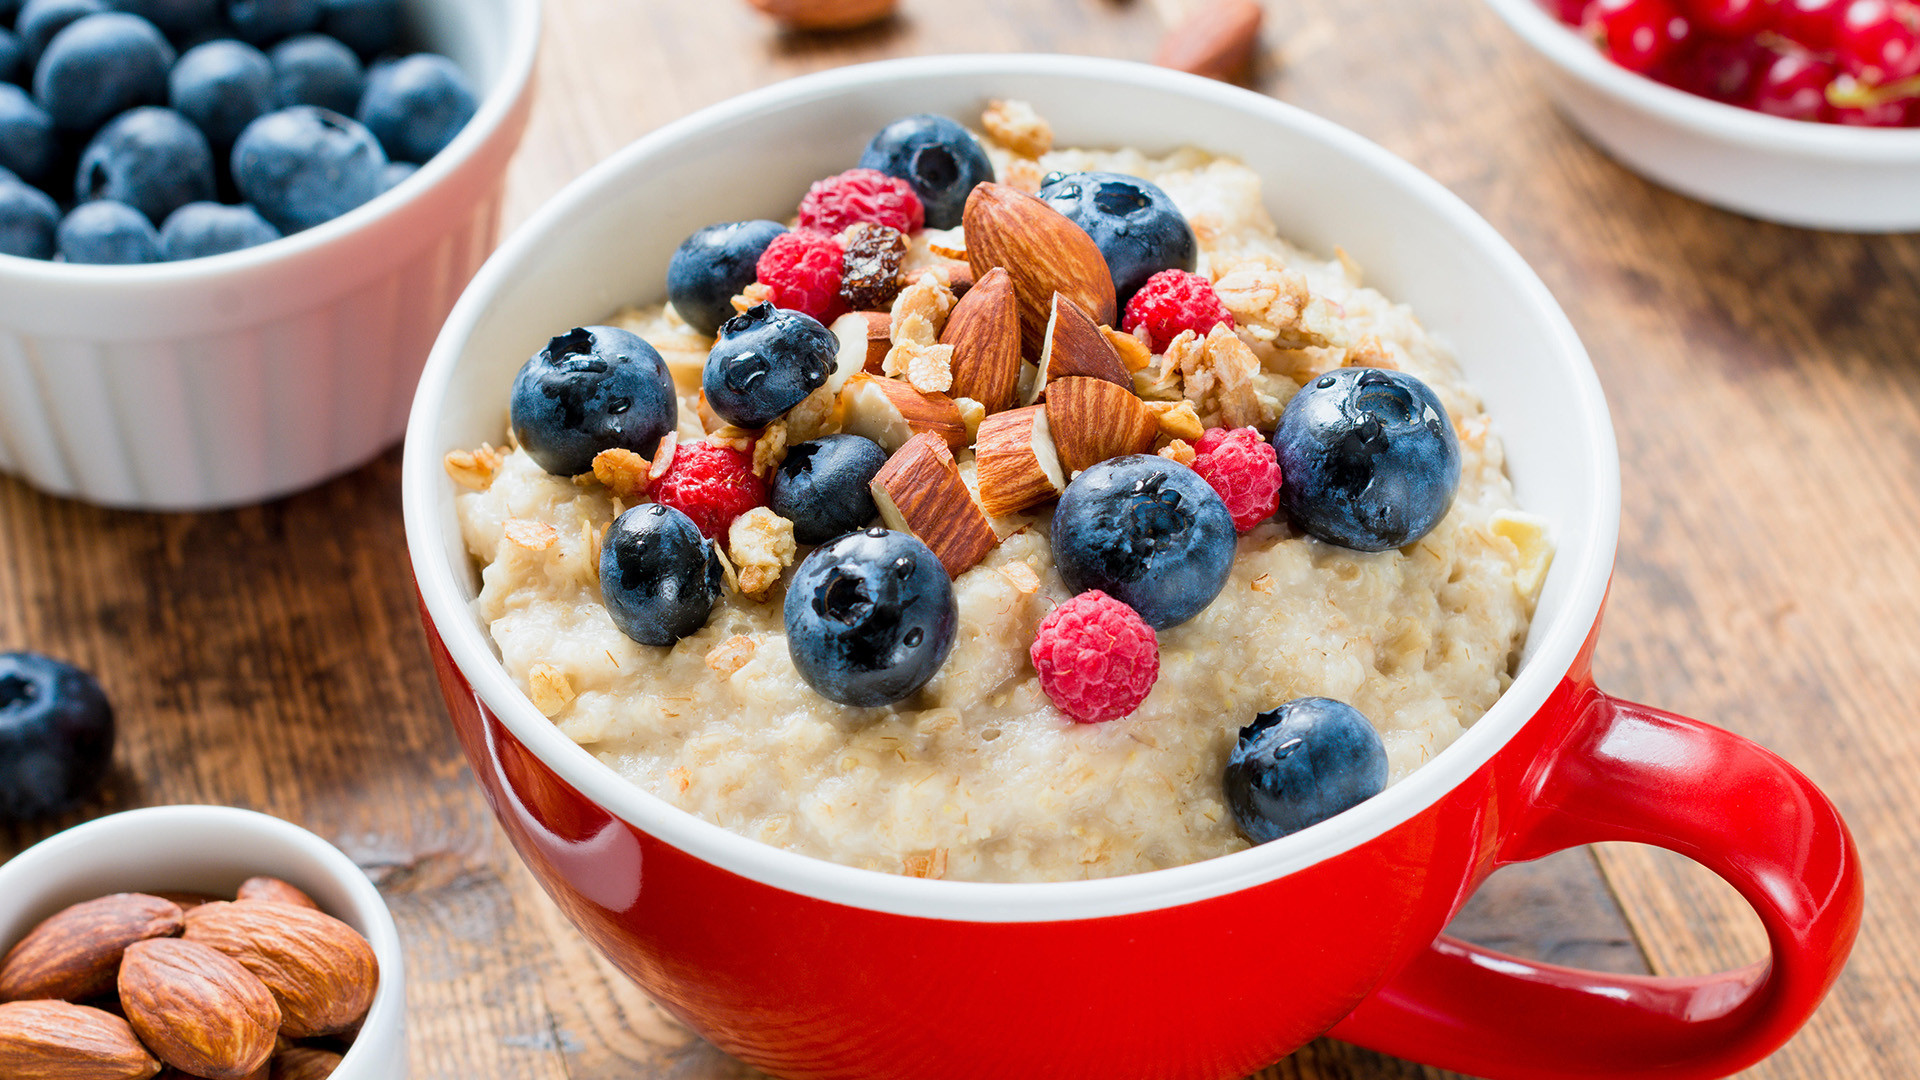 Healthy Oats Breakfast  Top 5 Oats Benefits And Why To Eat Them Regularly Fitneass